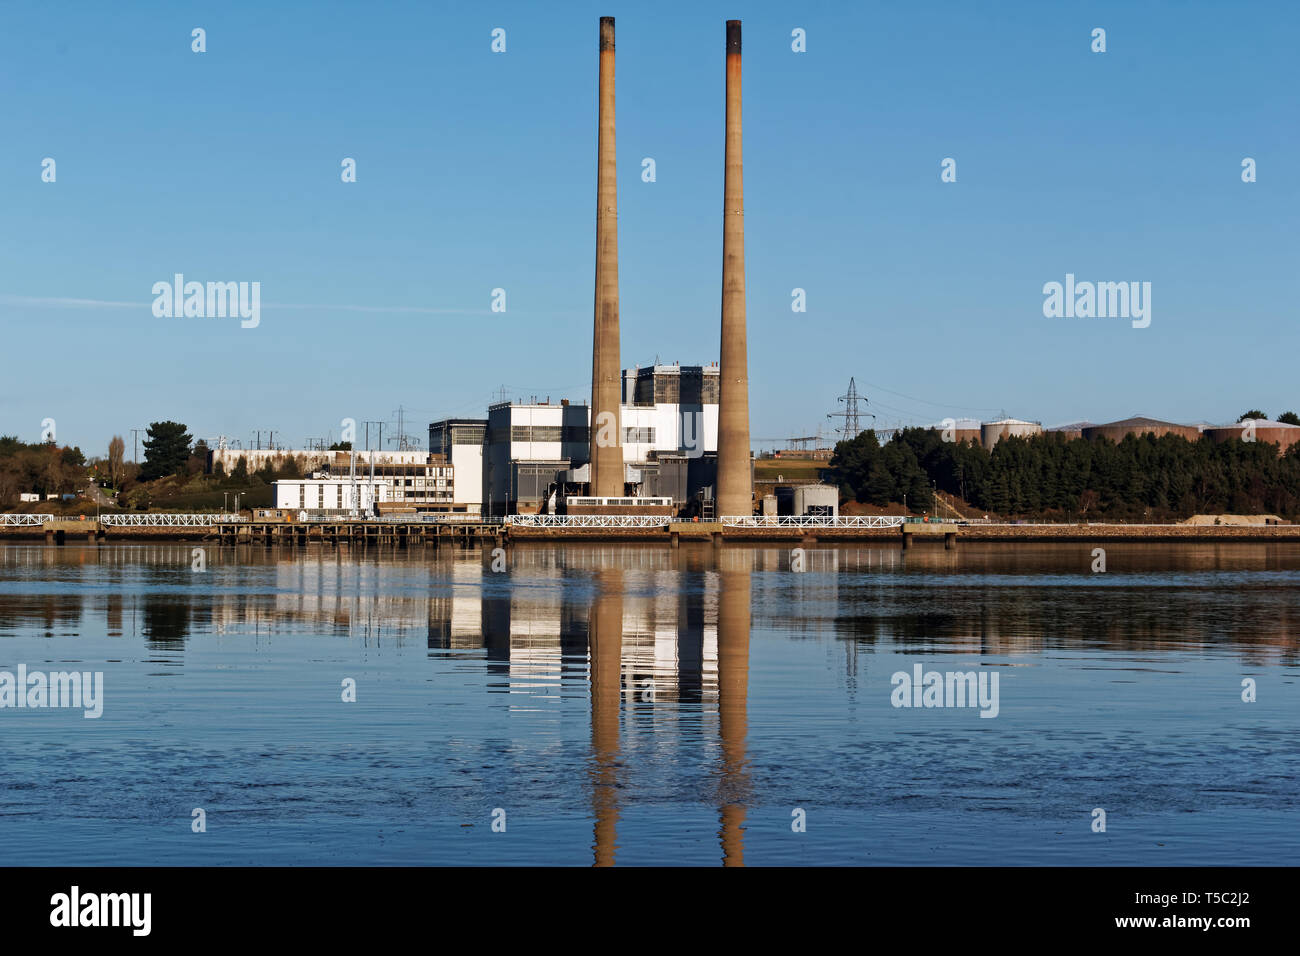 Image of a power plant with two chimneys on Little Island in Waterford Harbour,Ireland. - Stock Image